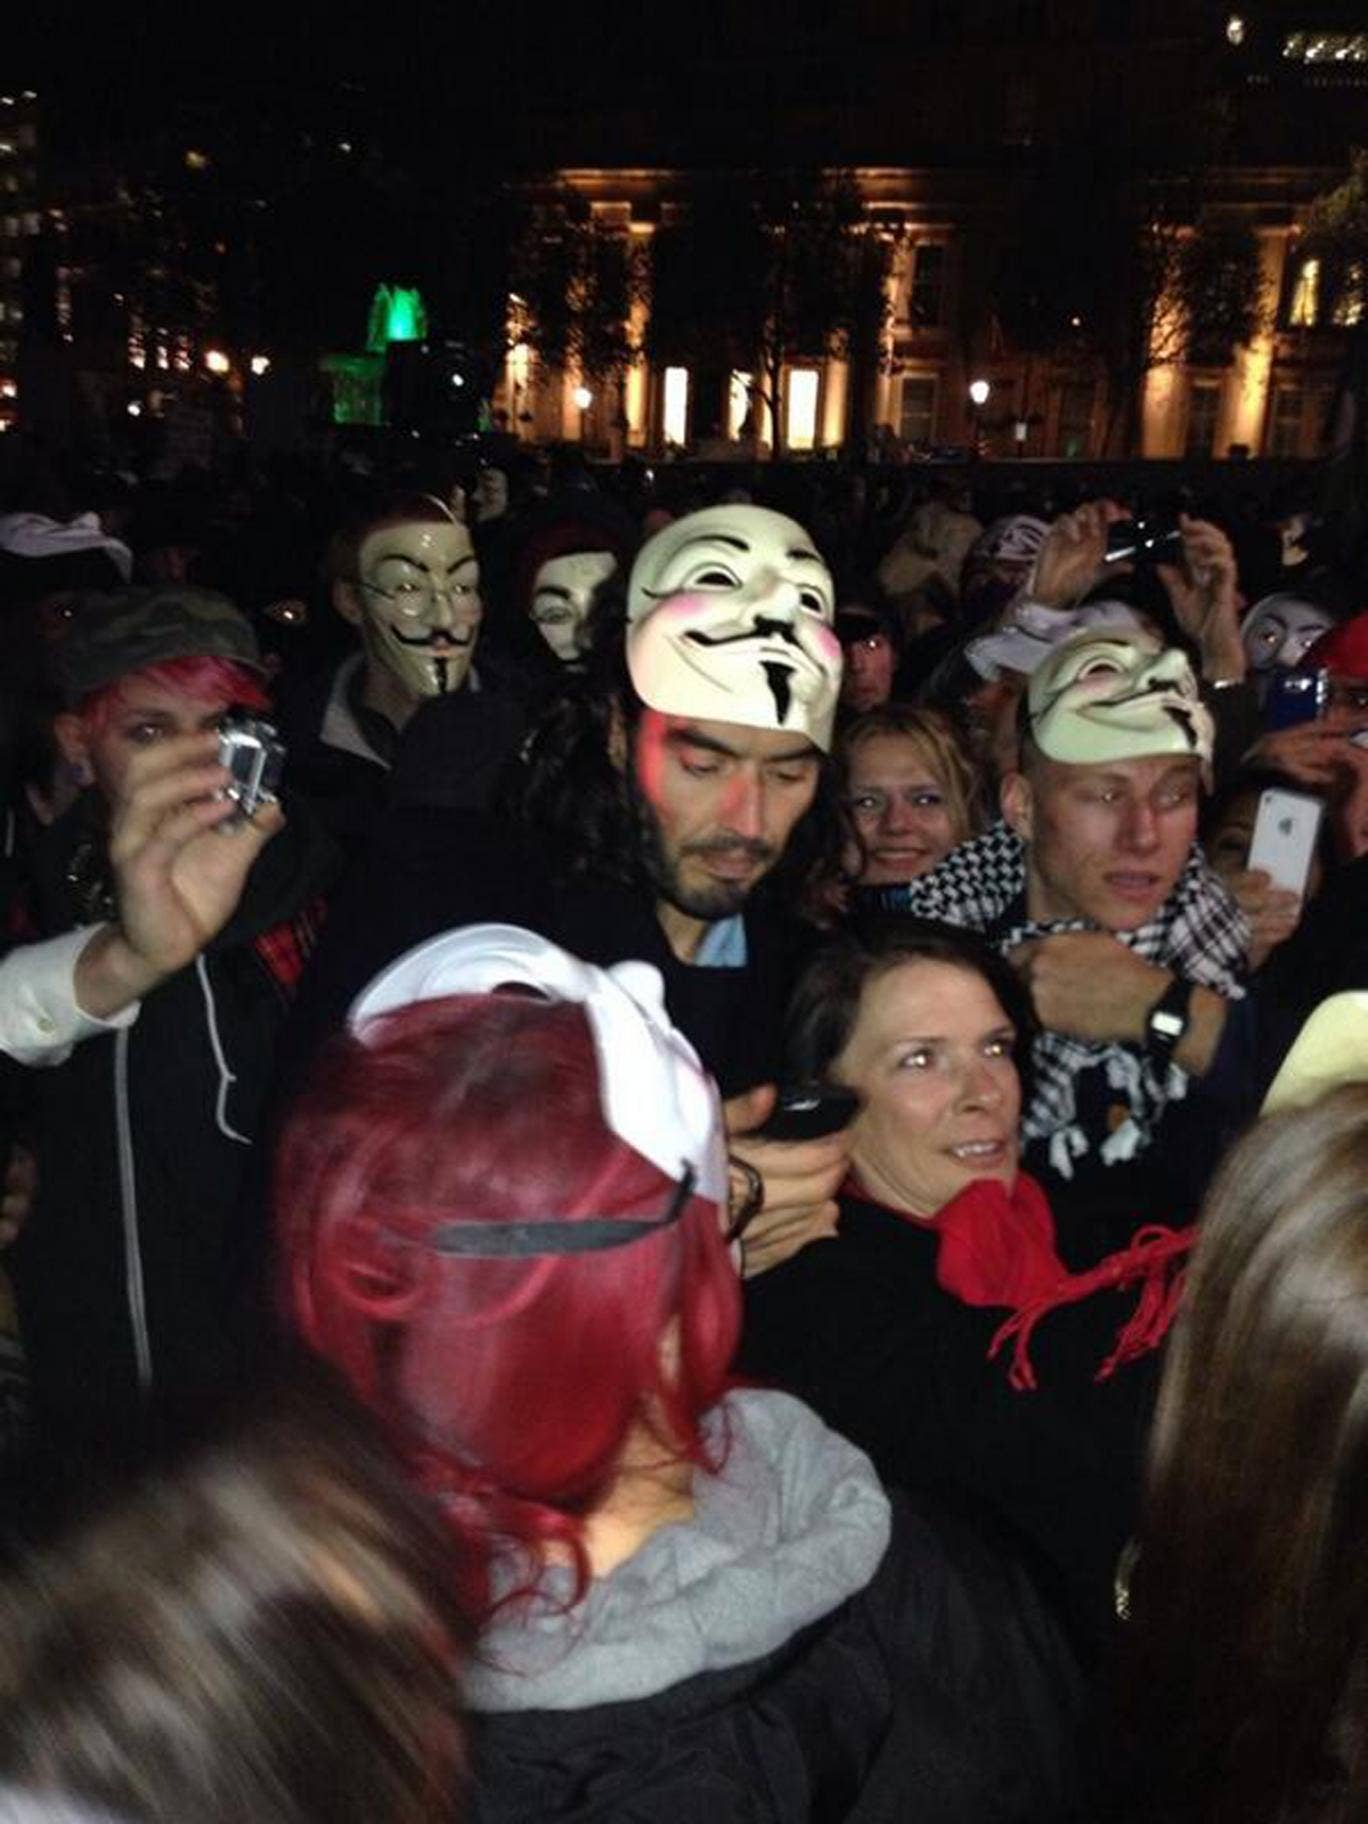 Russell Brand removes his Guy Fawkes mask while on a protest in London organised by Hacktivist group Anonymous